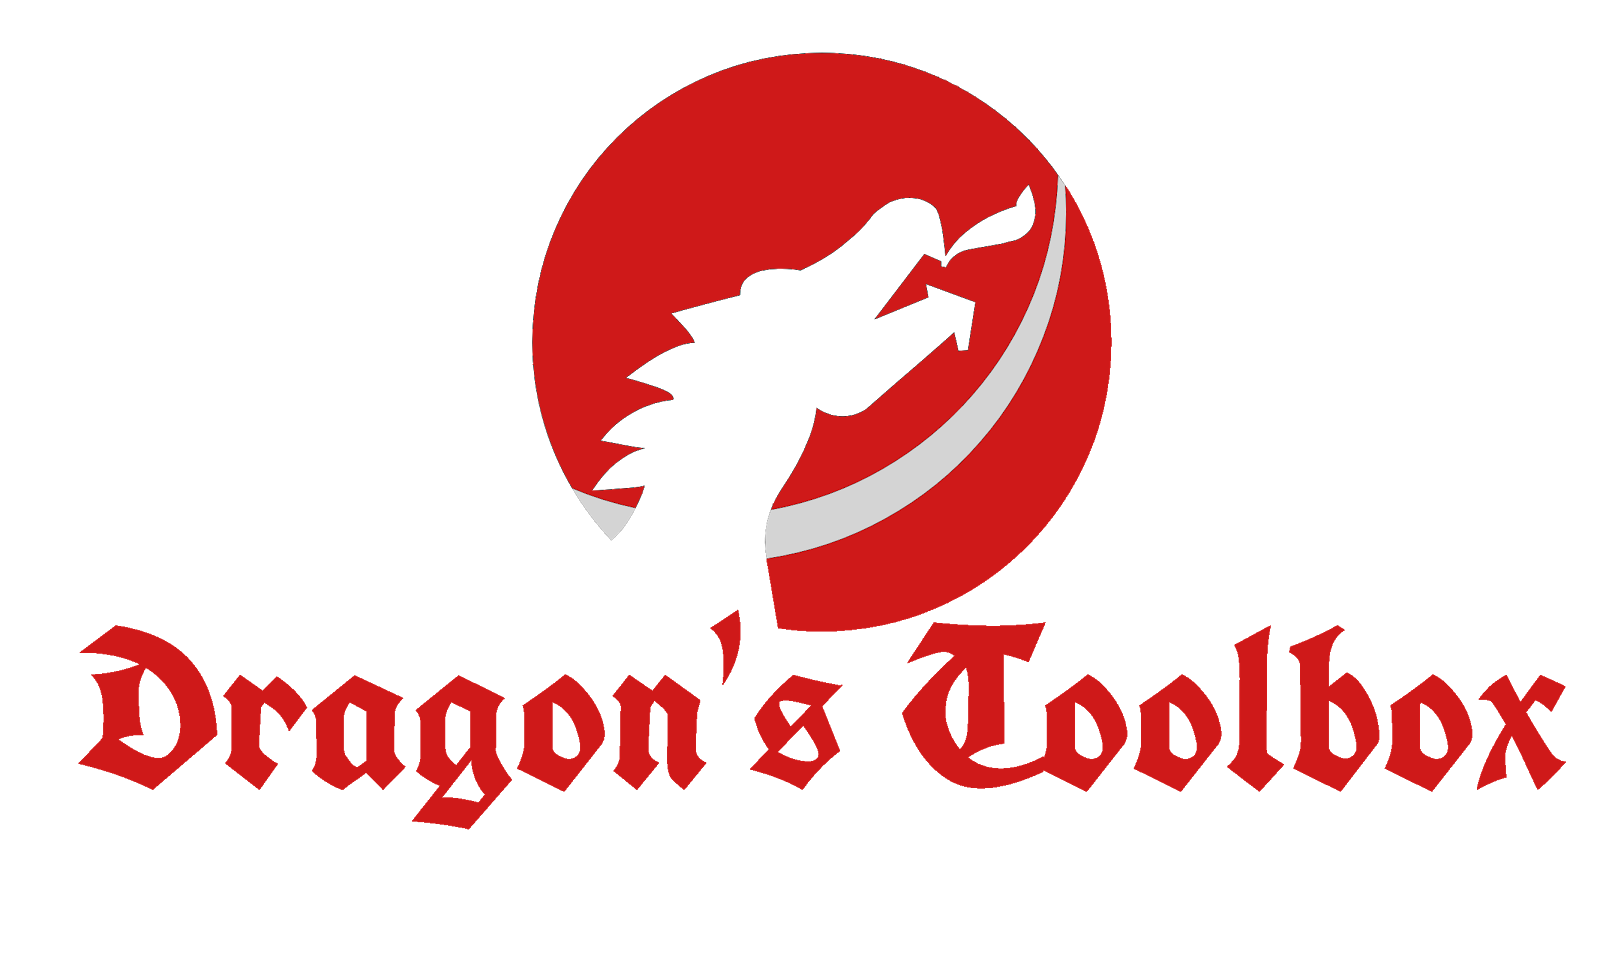 The Dragon's Toolbox